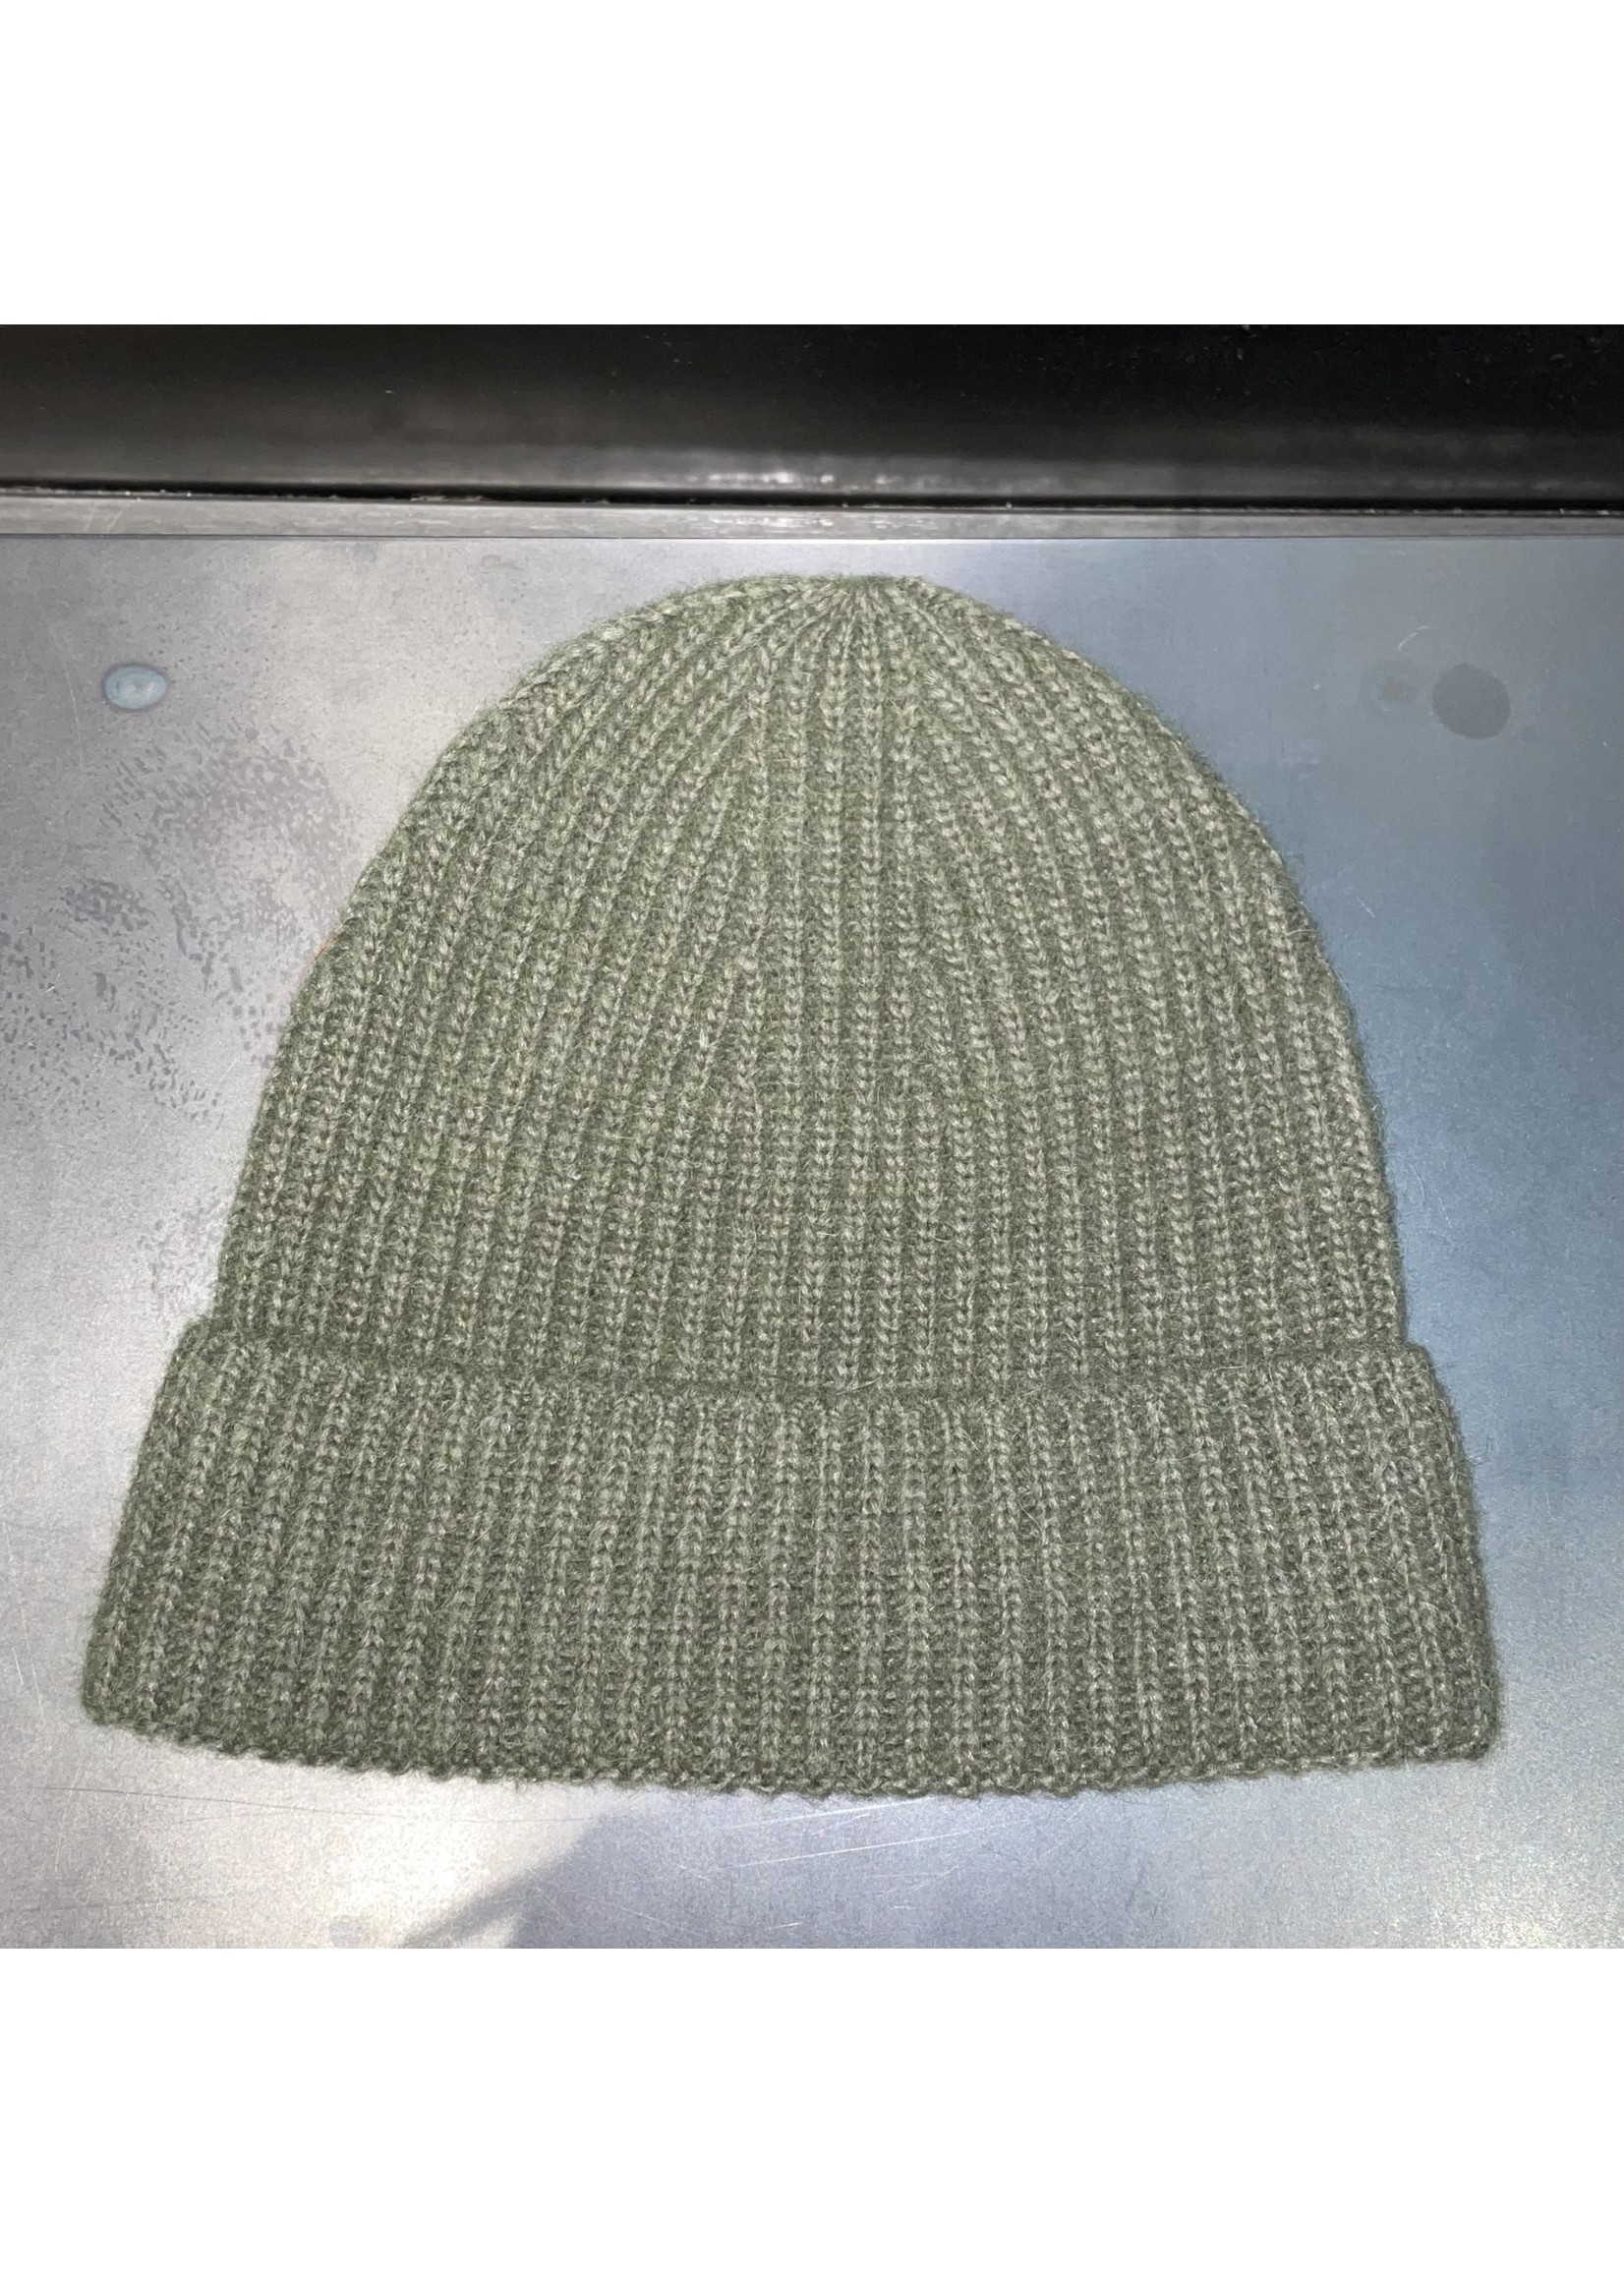 Closed Closed Knitted Hat